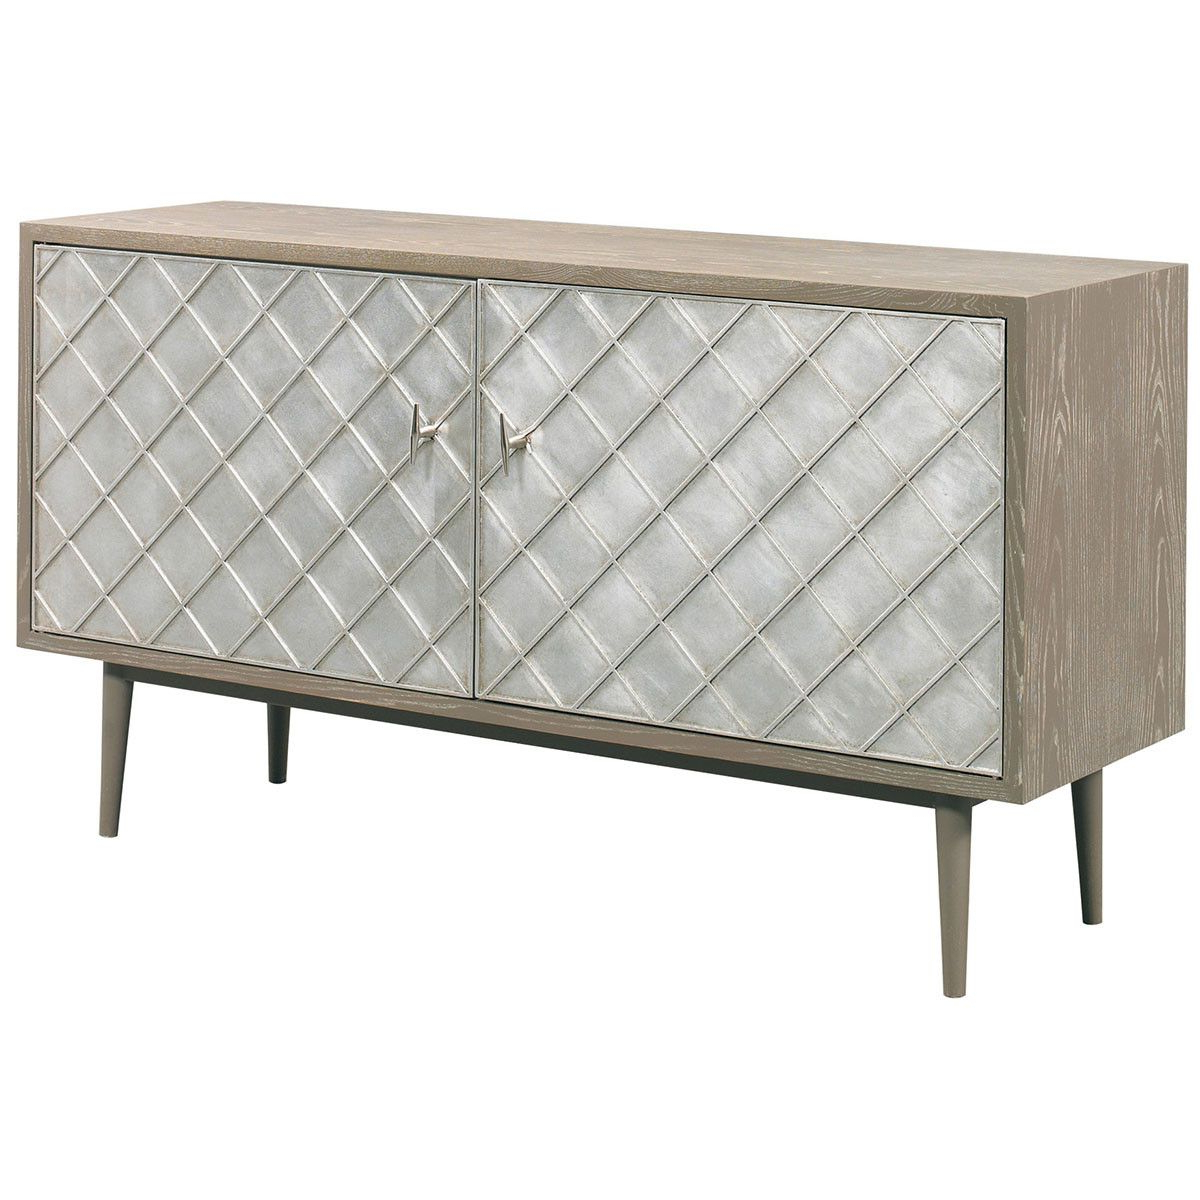 Cth Sherrill Occasional Vintage Made Modern Franco Media Cabinet Pertaining To Parsons Travertine Top & Stainless Steel Base 48x16 Console Tables (View 5 of 15)